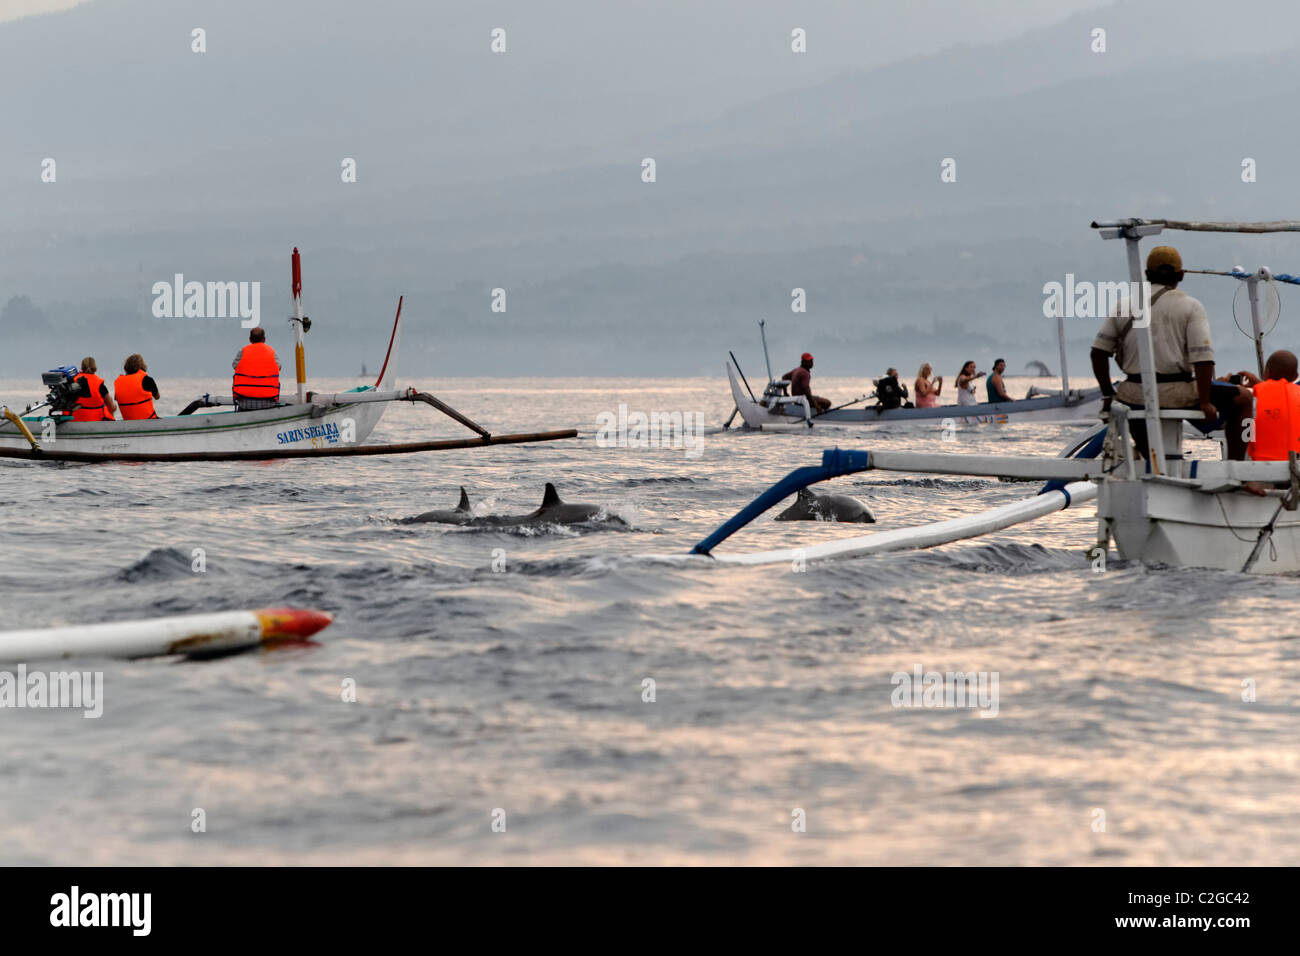 Dolphin watching, Bali, Indonesia, March 2011 - Stock Image